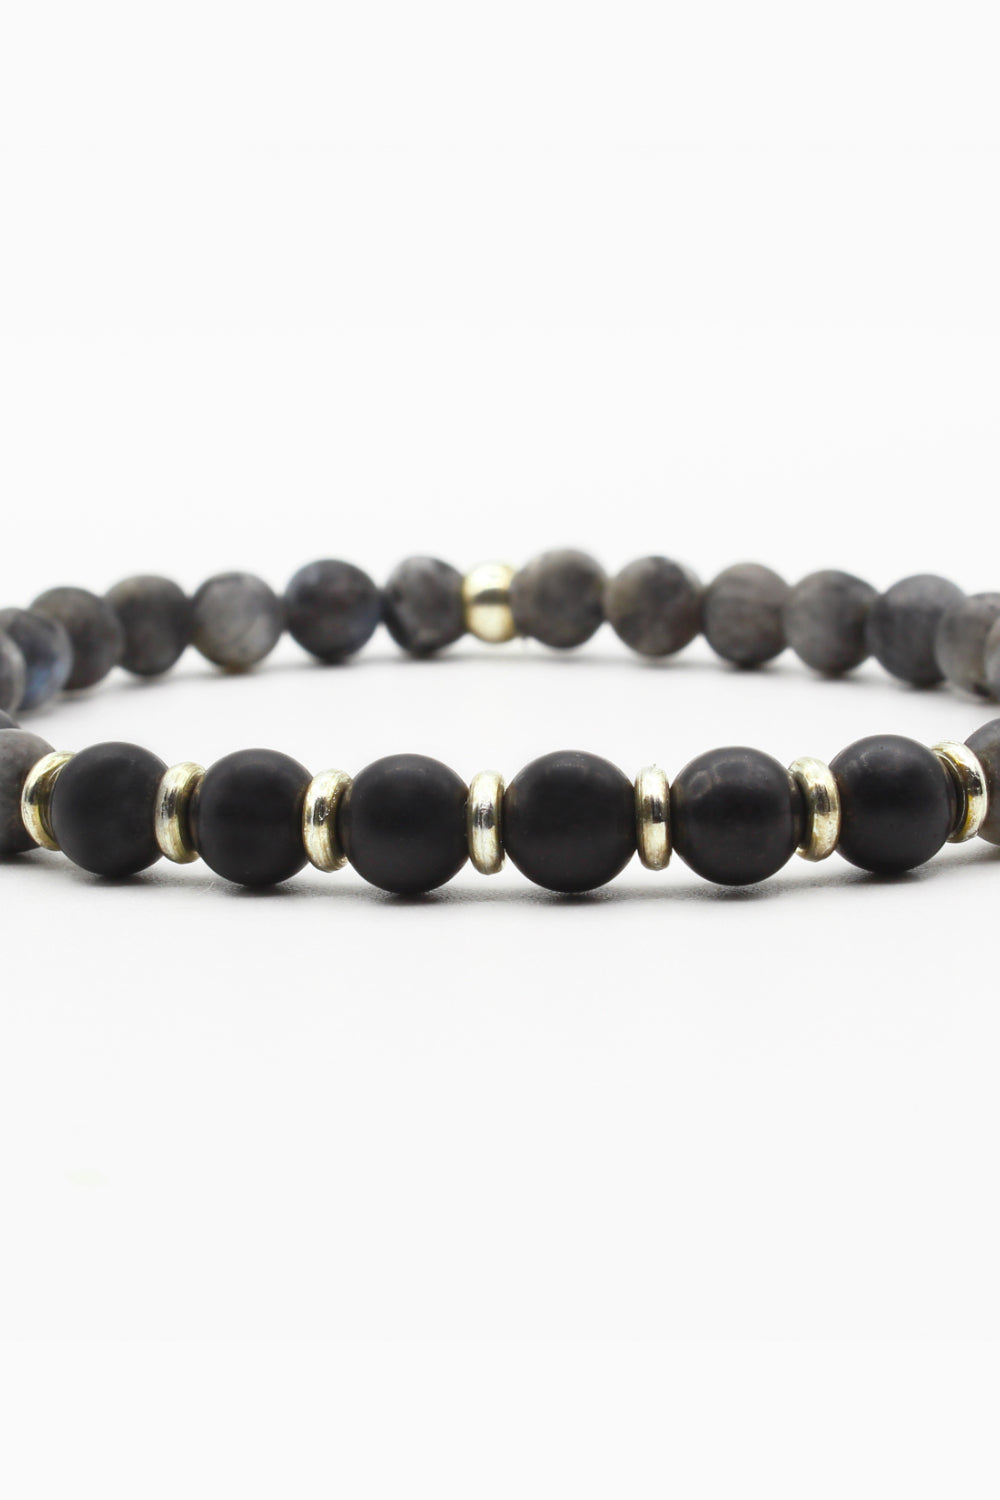 Strength Shungite Mala Bracelet